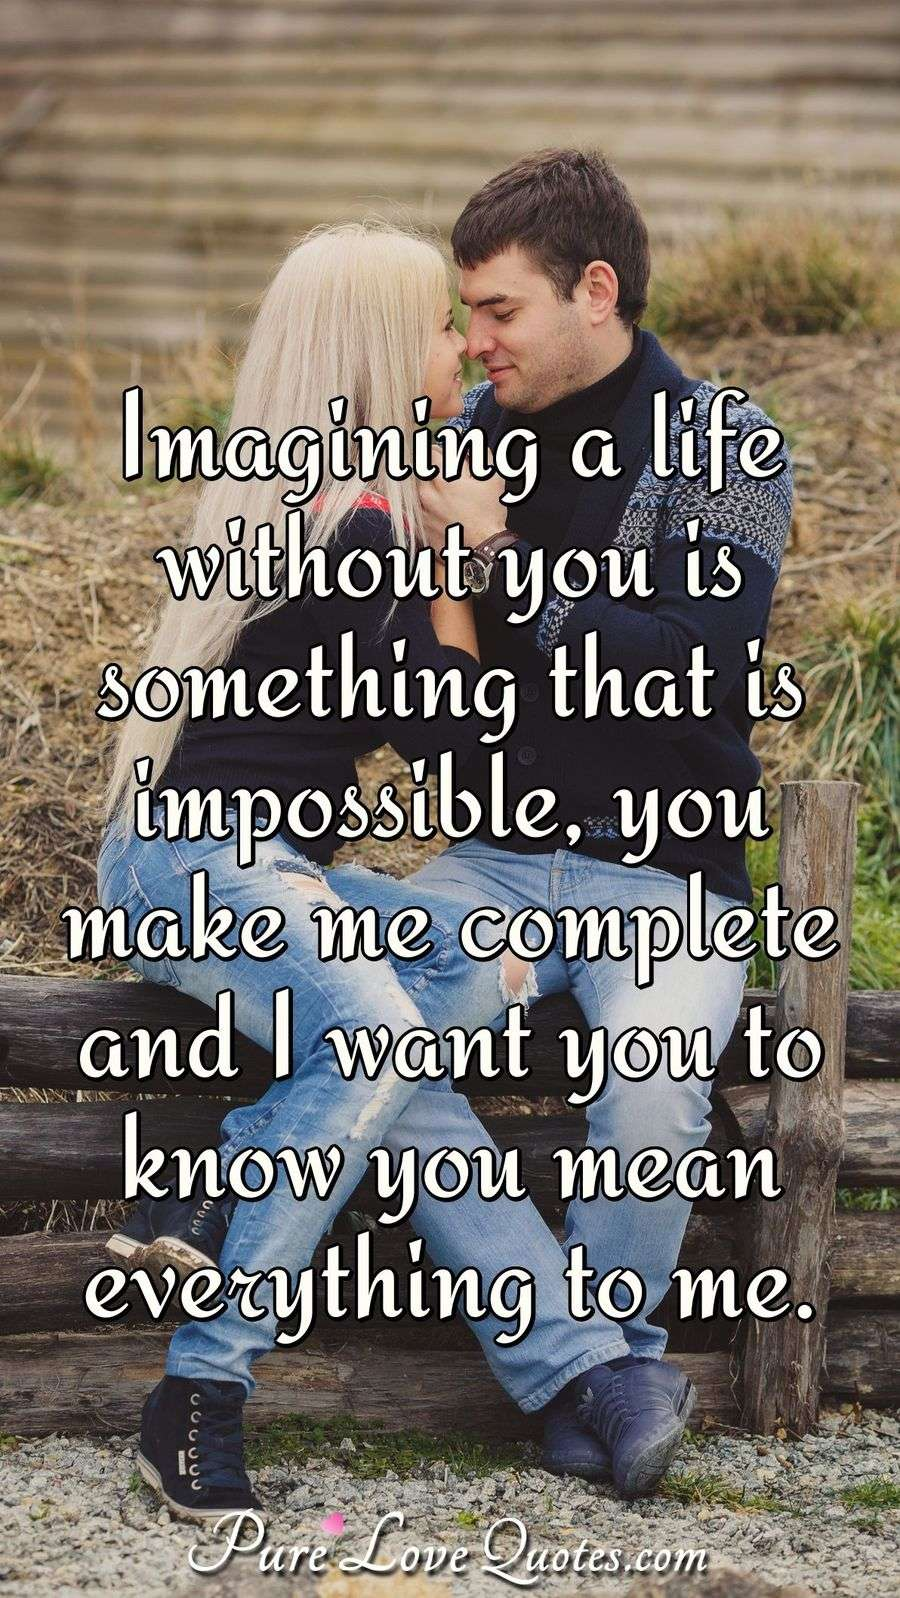 I Love You Quotes For Him: Imagining A Life Without You Is Something That Is